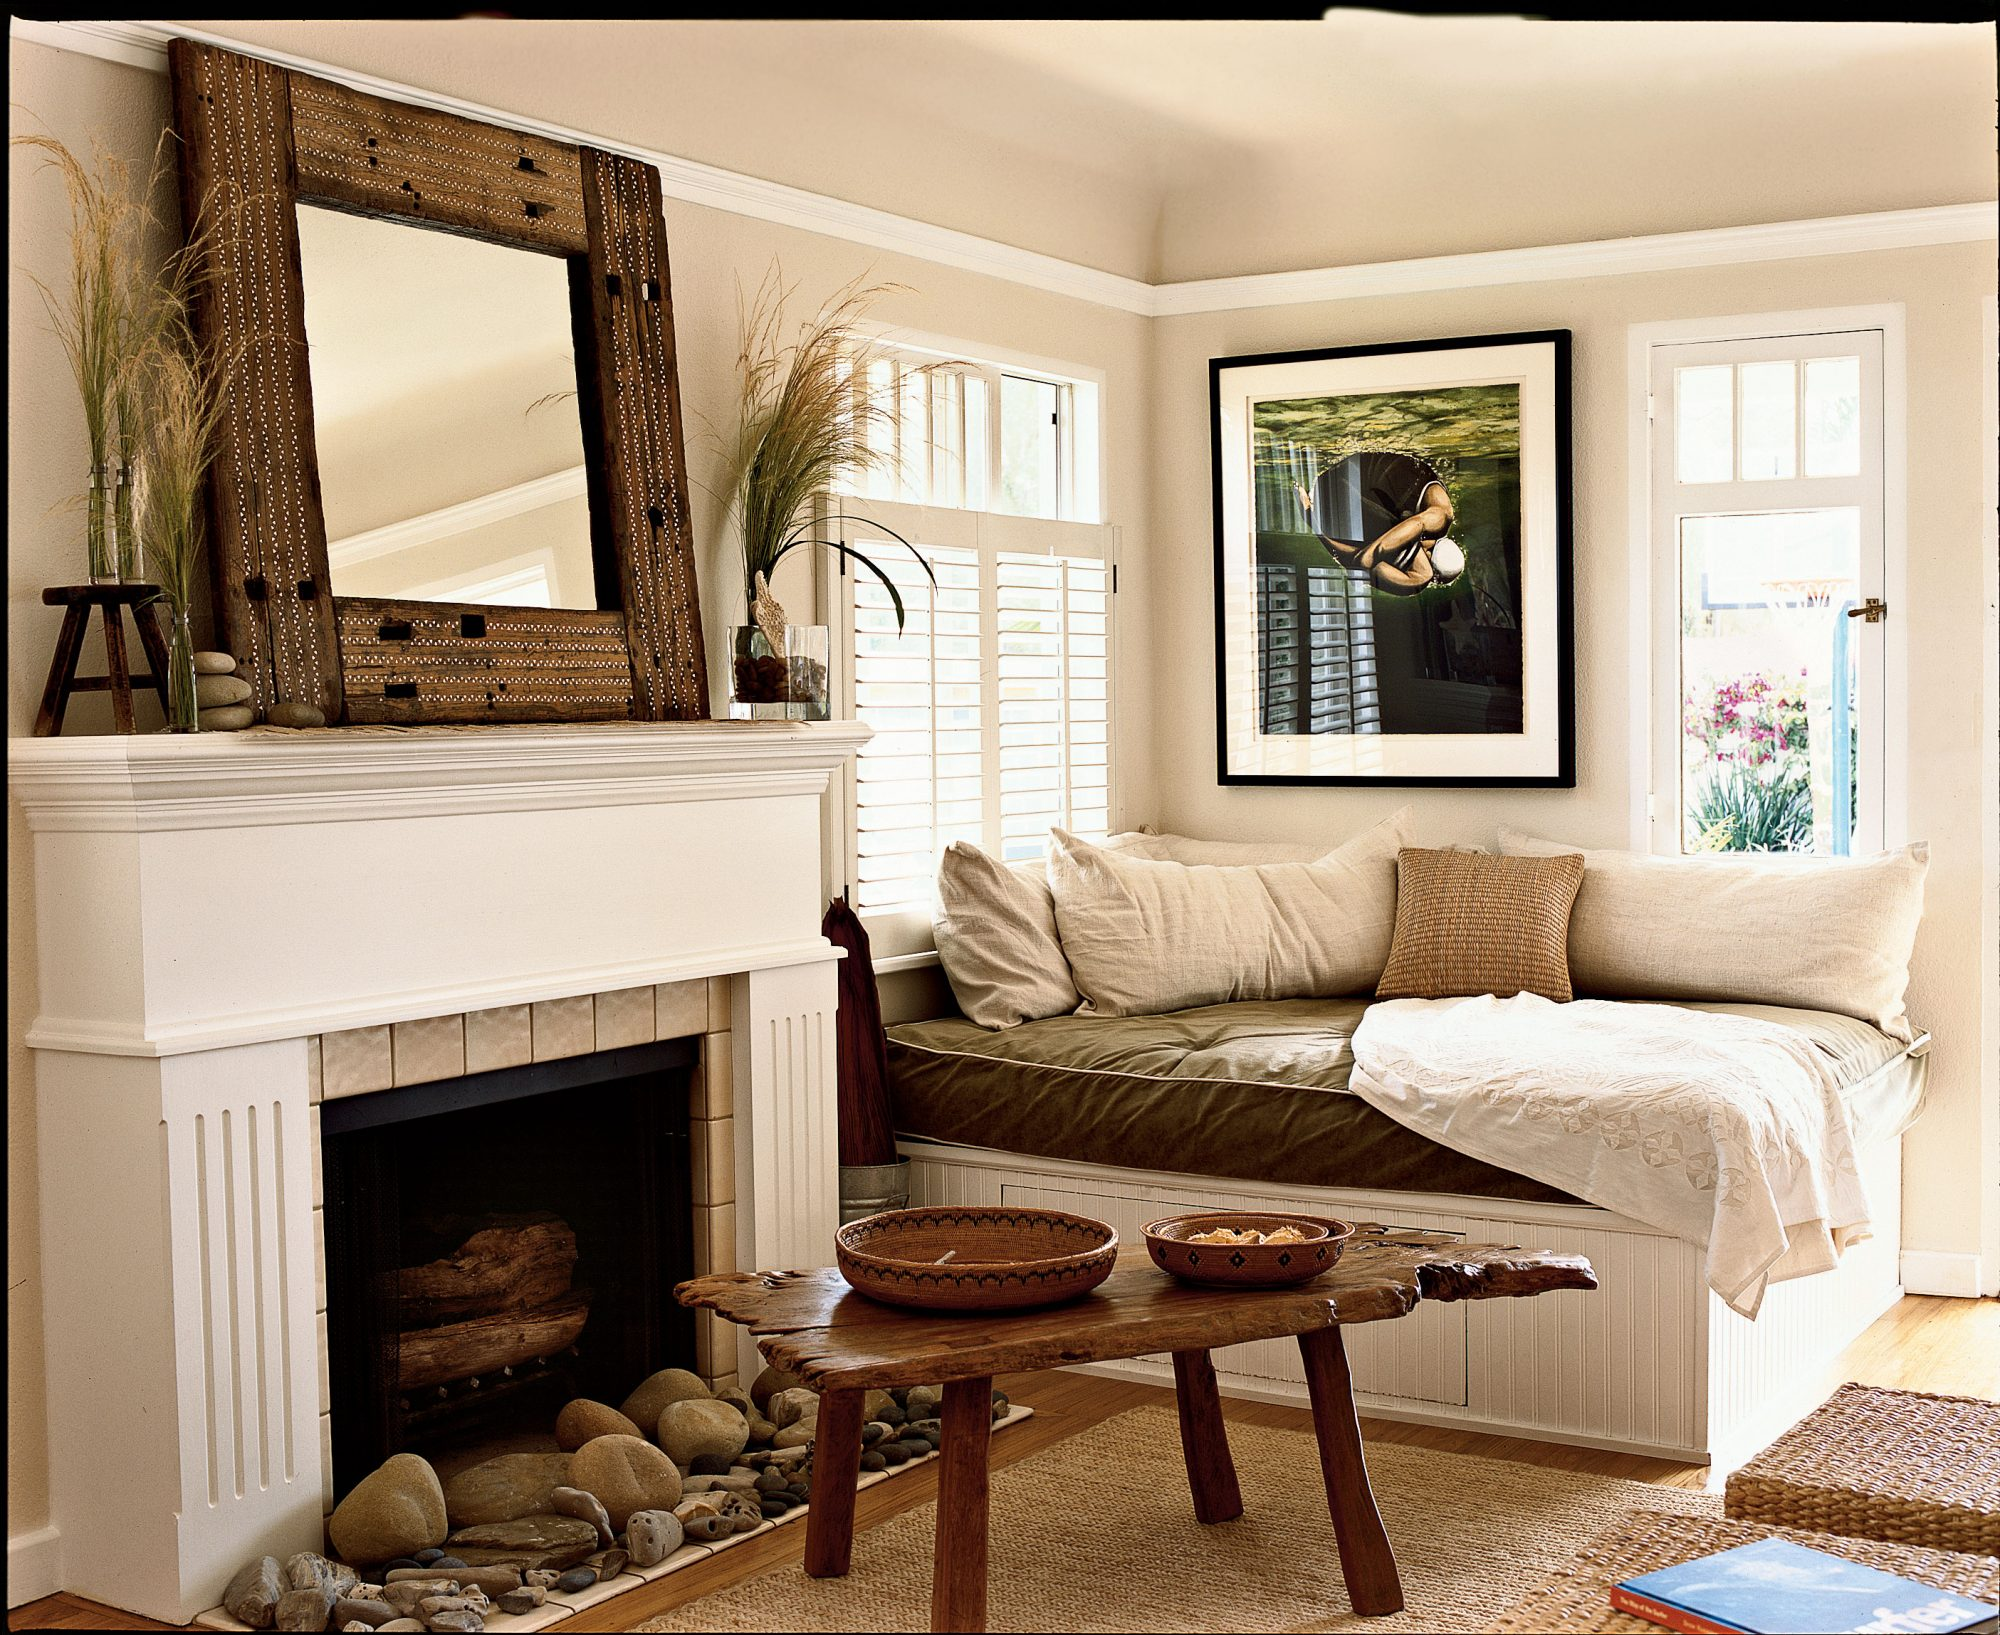 An extra-large cushioned space for lounging adds a quiet elegance to this simplistic living area. Organic extras such as the driftwood coffee table and decorative beach stones have a natural coastal charm.